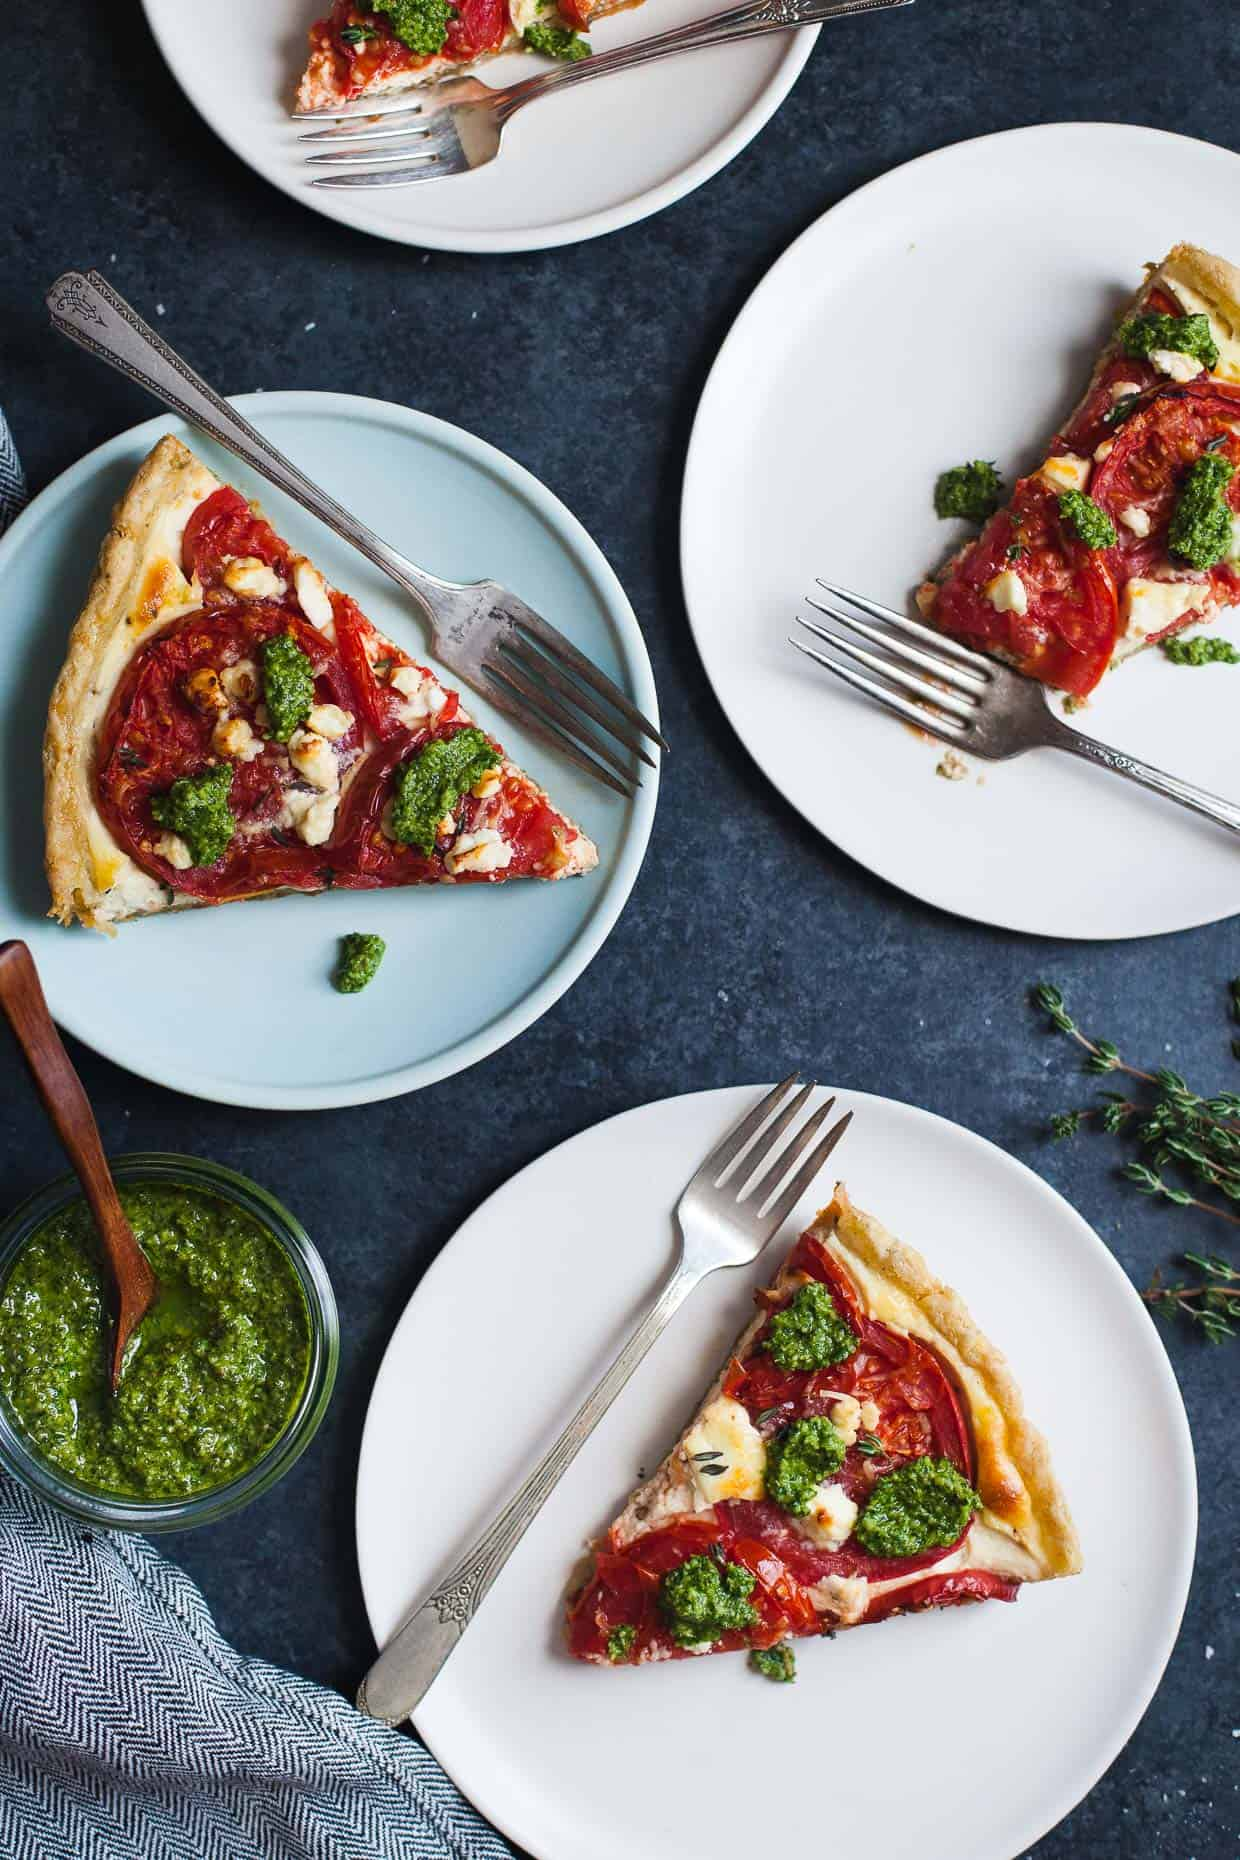 Ricotta Tomato Tart with Gluten-free Cornmeal Crust & Arugula Walnut Pesto